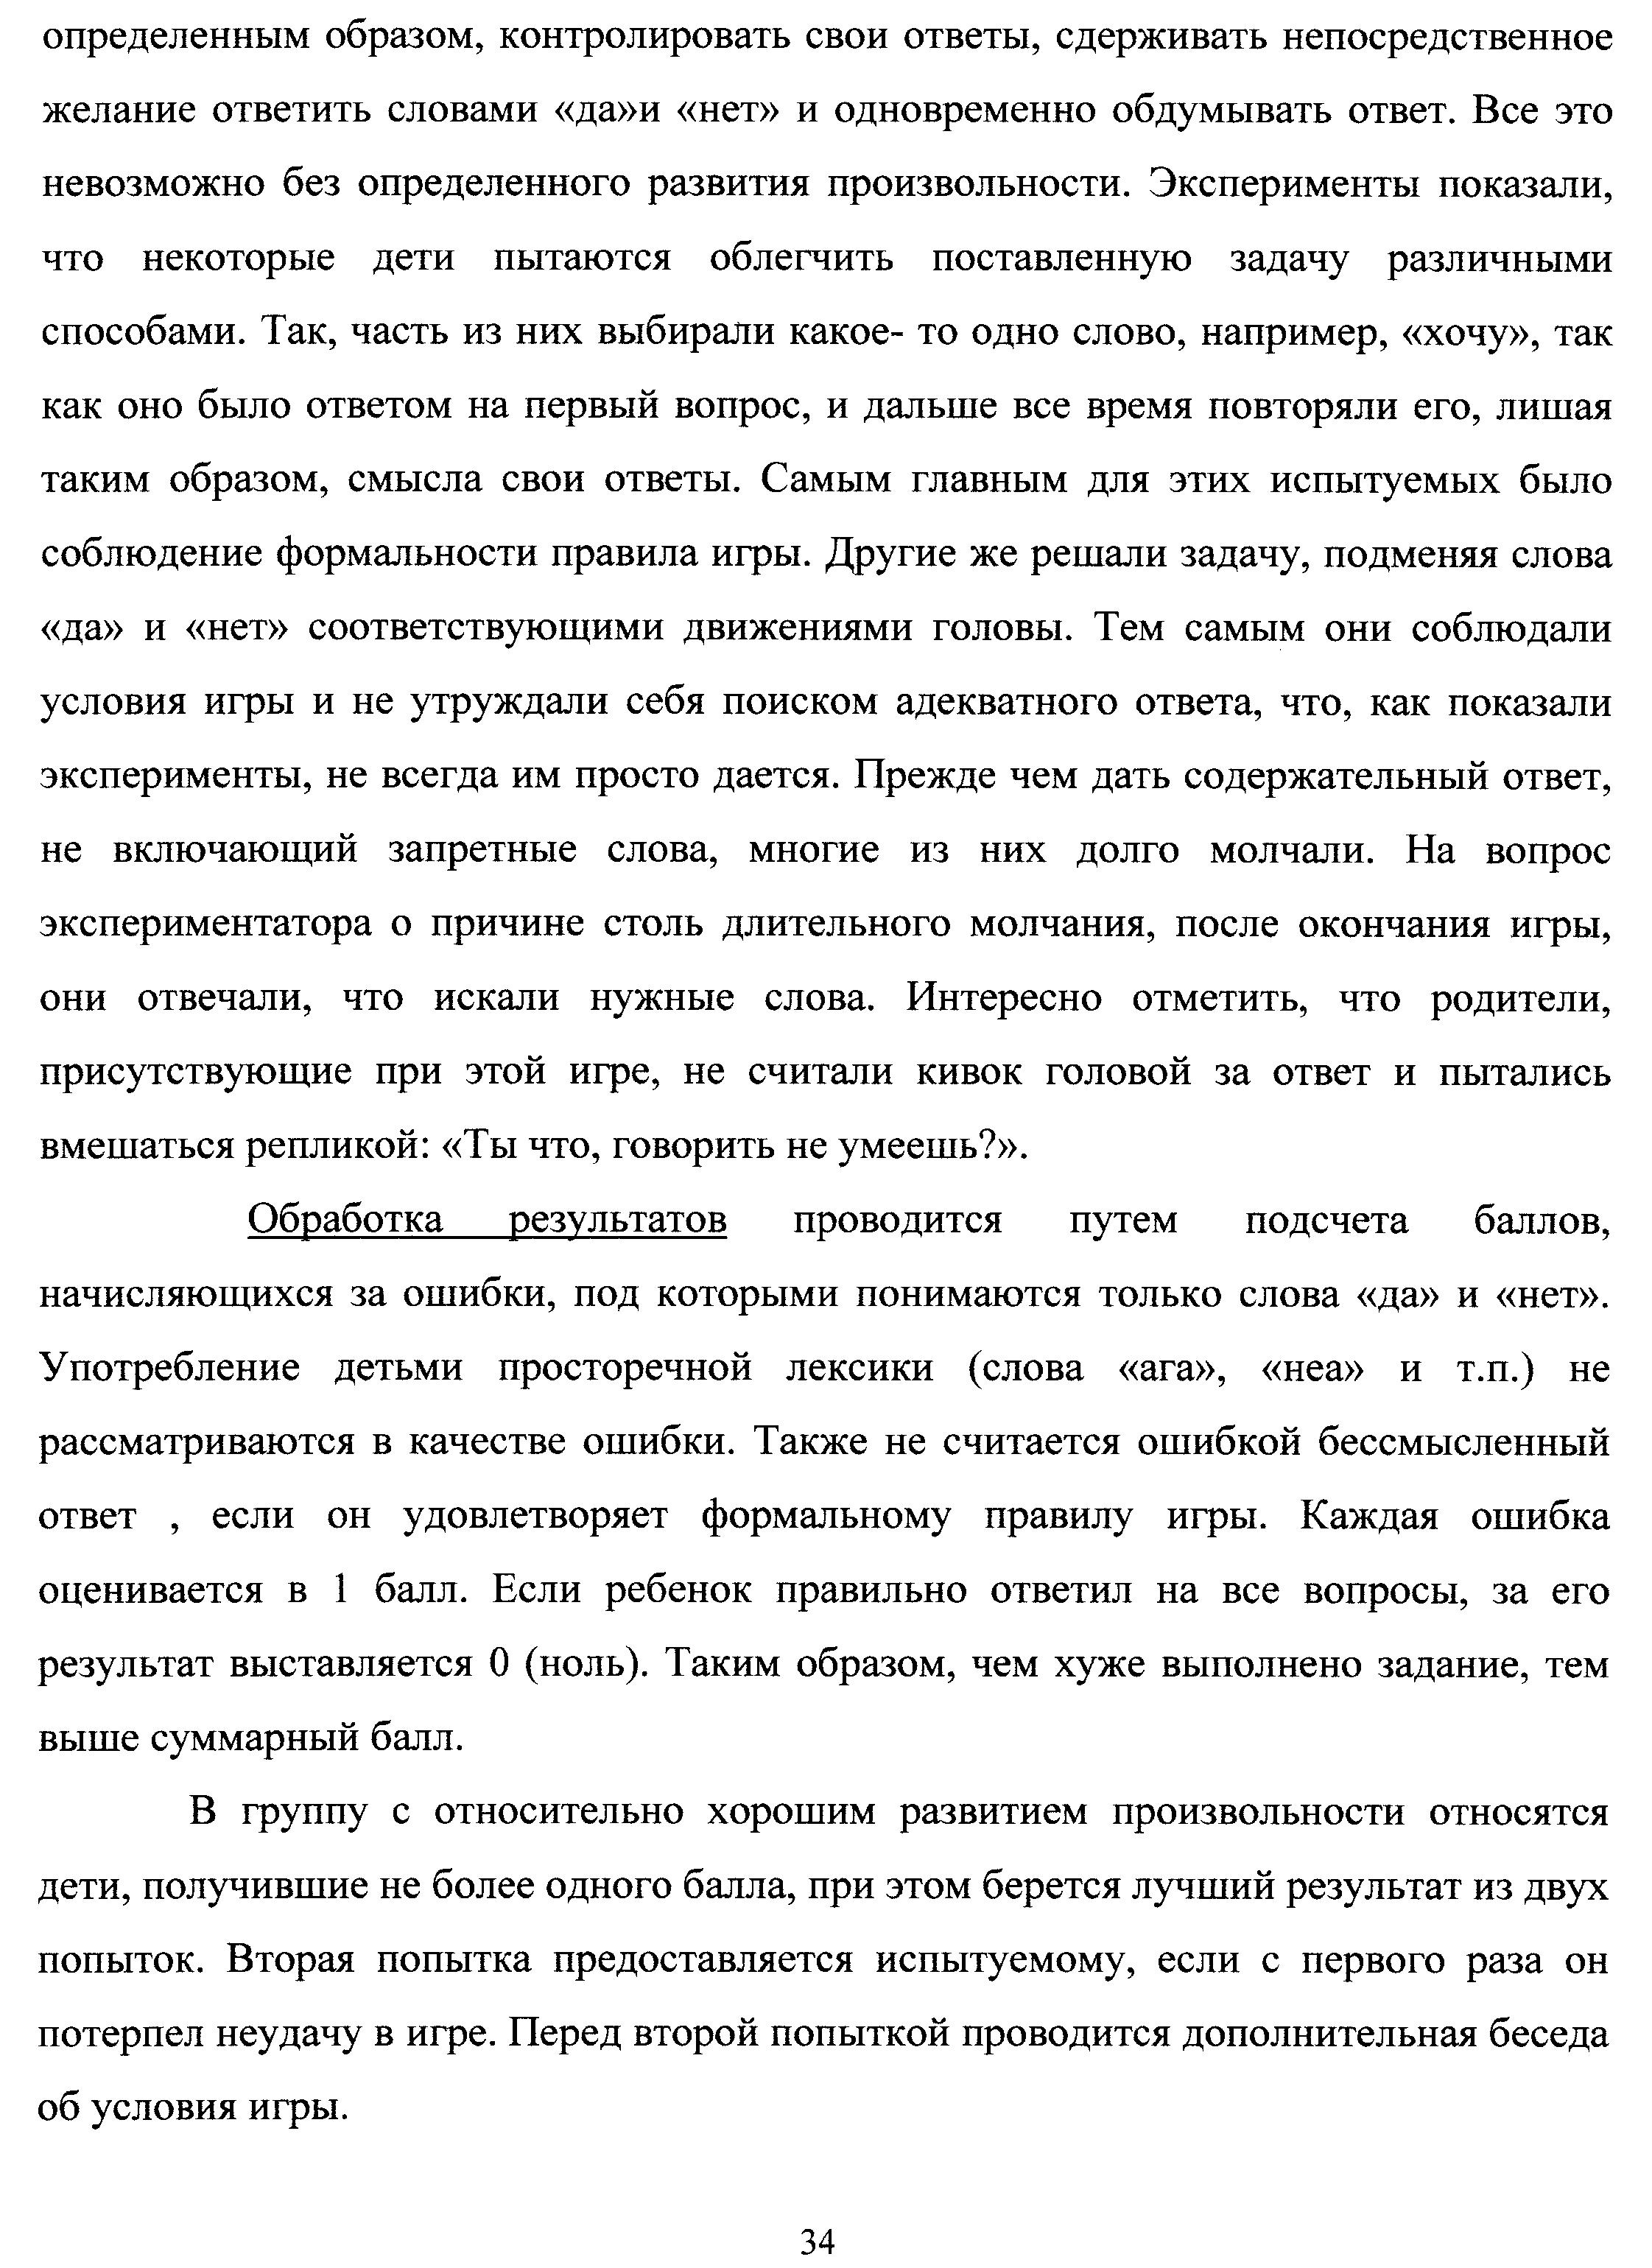 C:\Users\ЛАРИСА\Documents\Scanned Documents\Рисунок (138).jpg